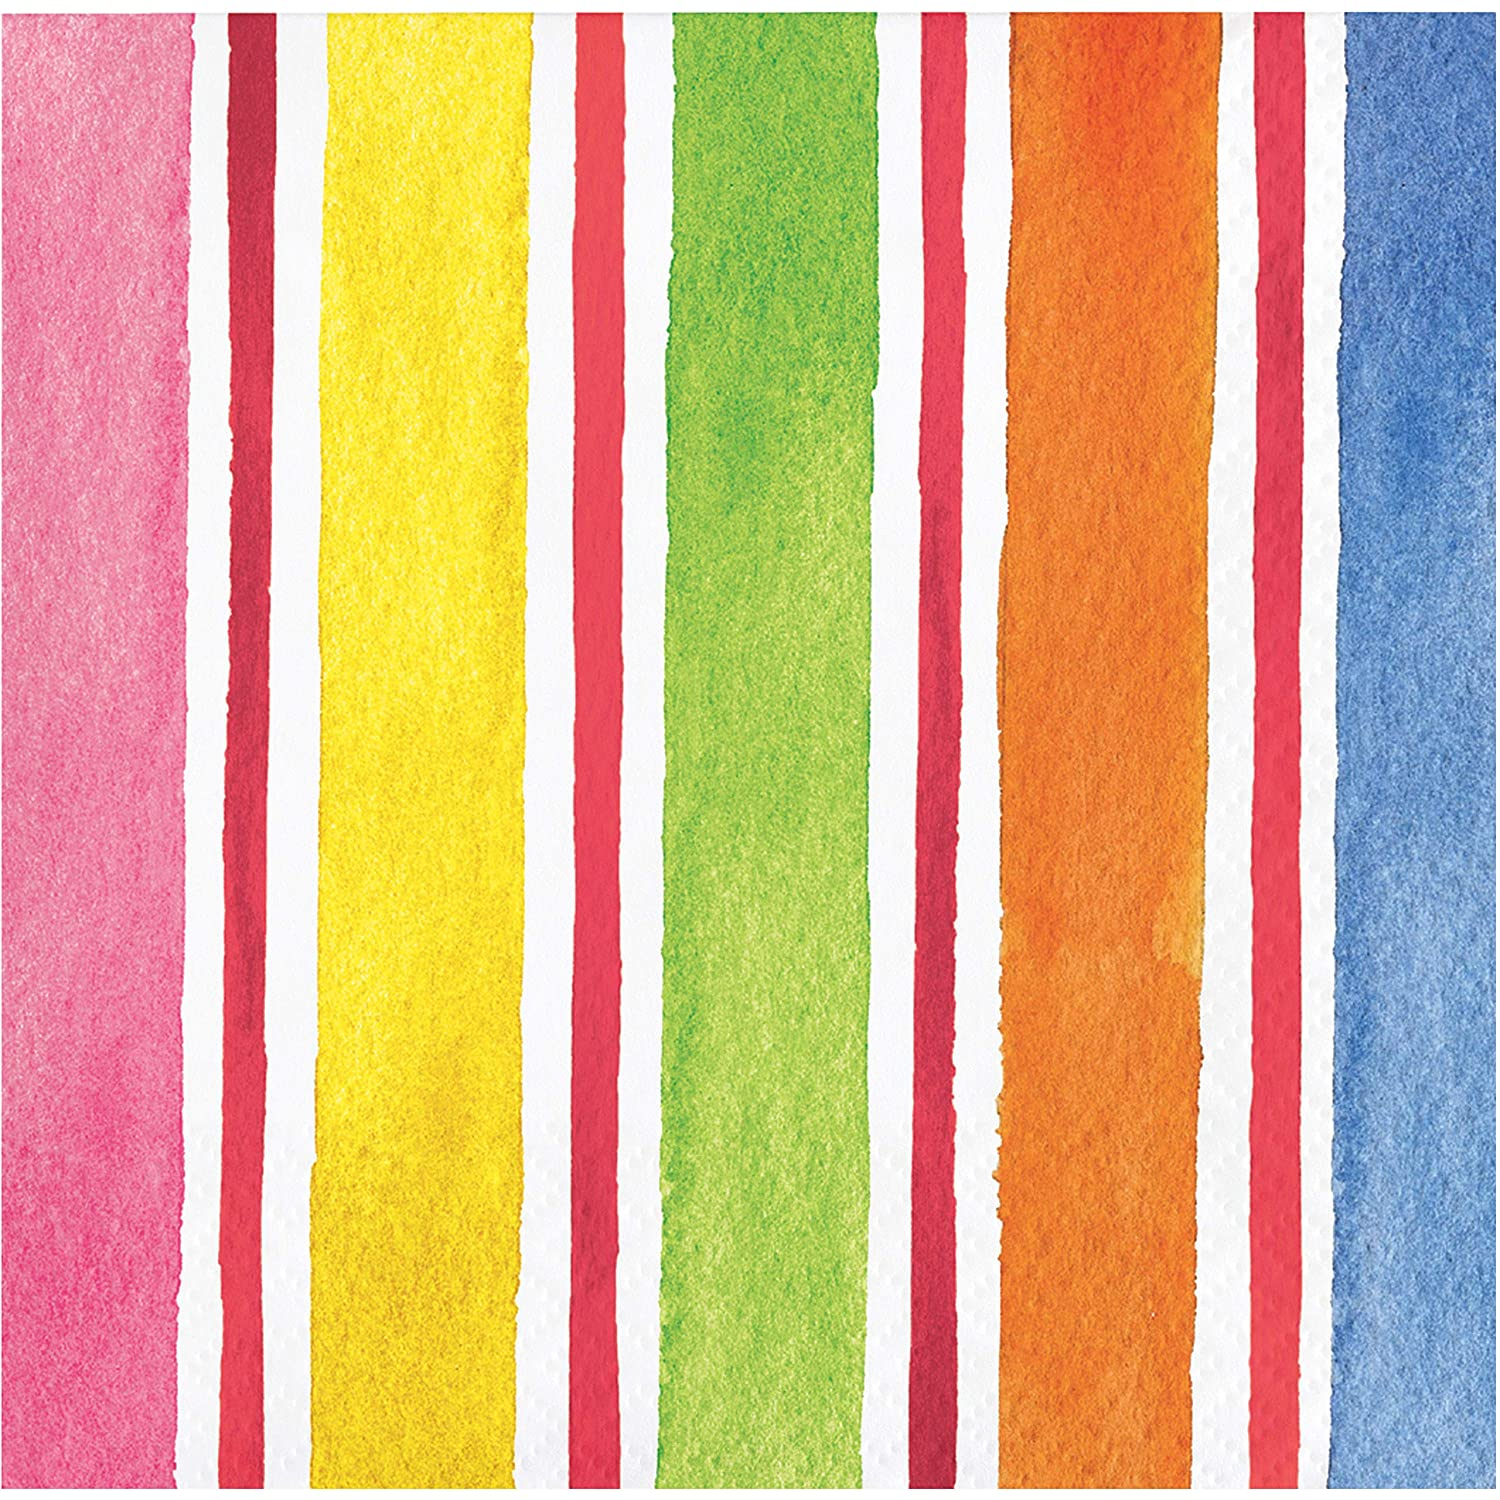 Creative Converting 335350 Breezy Beach Beverage Napkins 5 Multi-colored